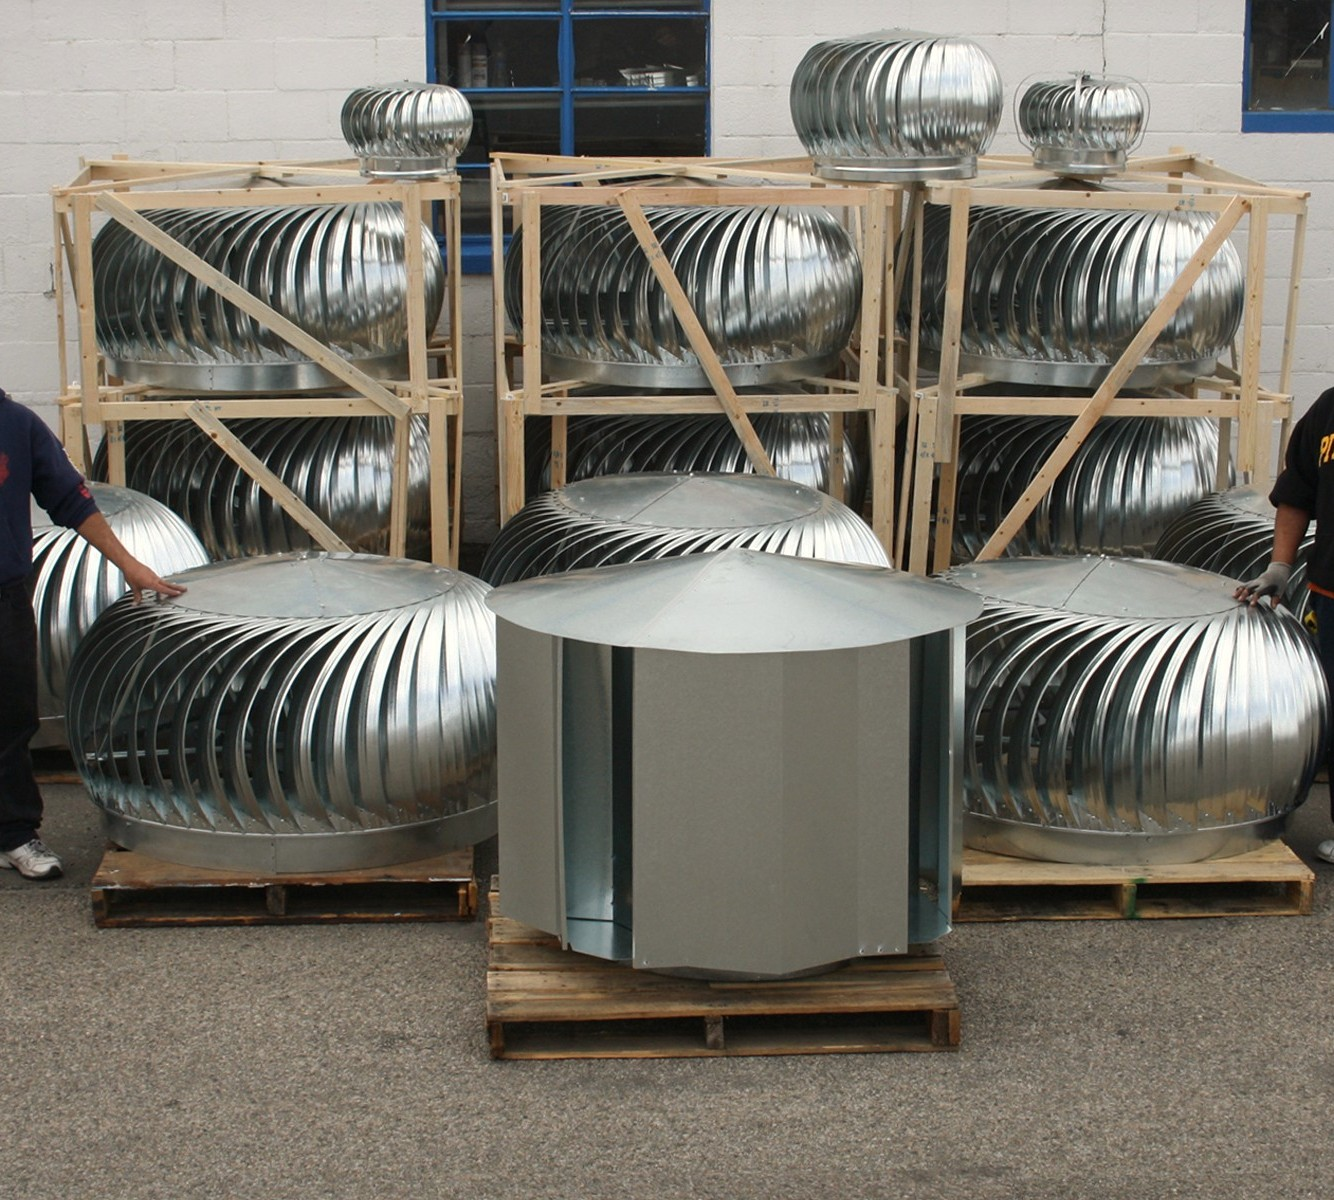 Industrial Roof Vents : Large commercial roof turbine vents